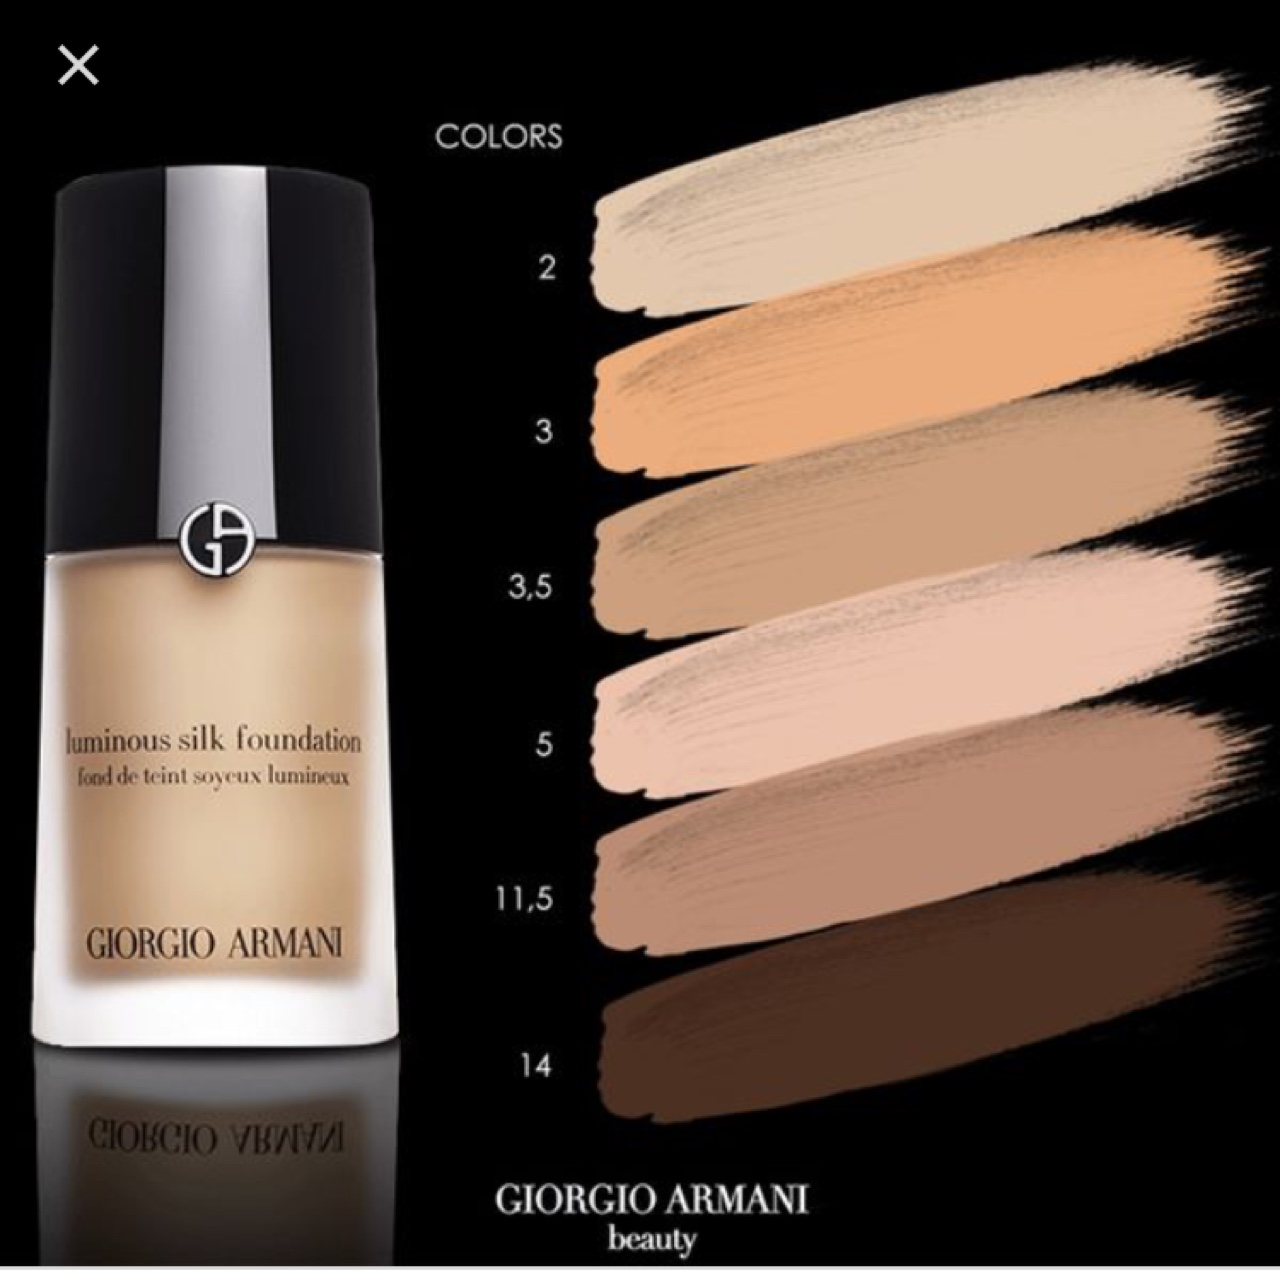 Armani Luminous Silk Foundation Shade 5 Less Than Depop